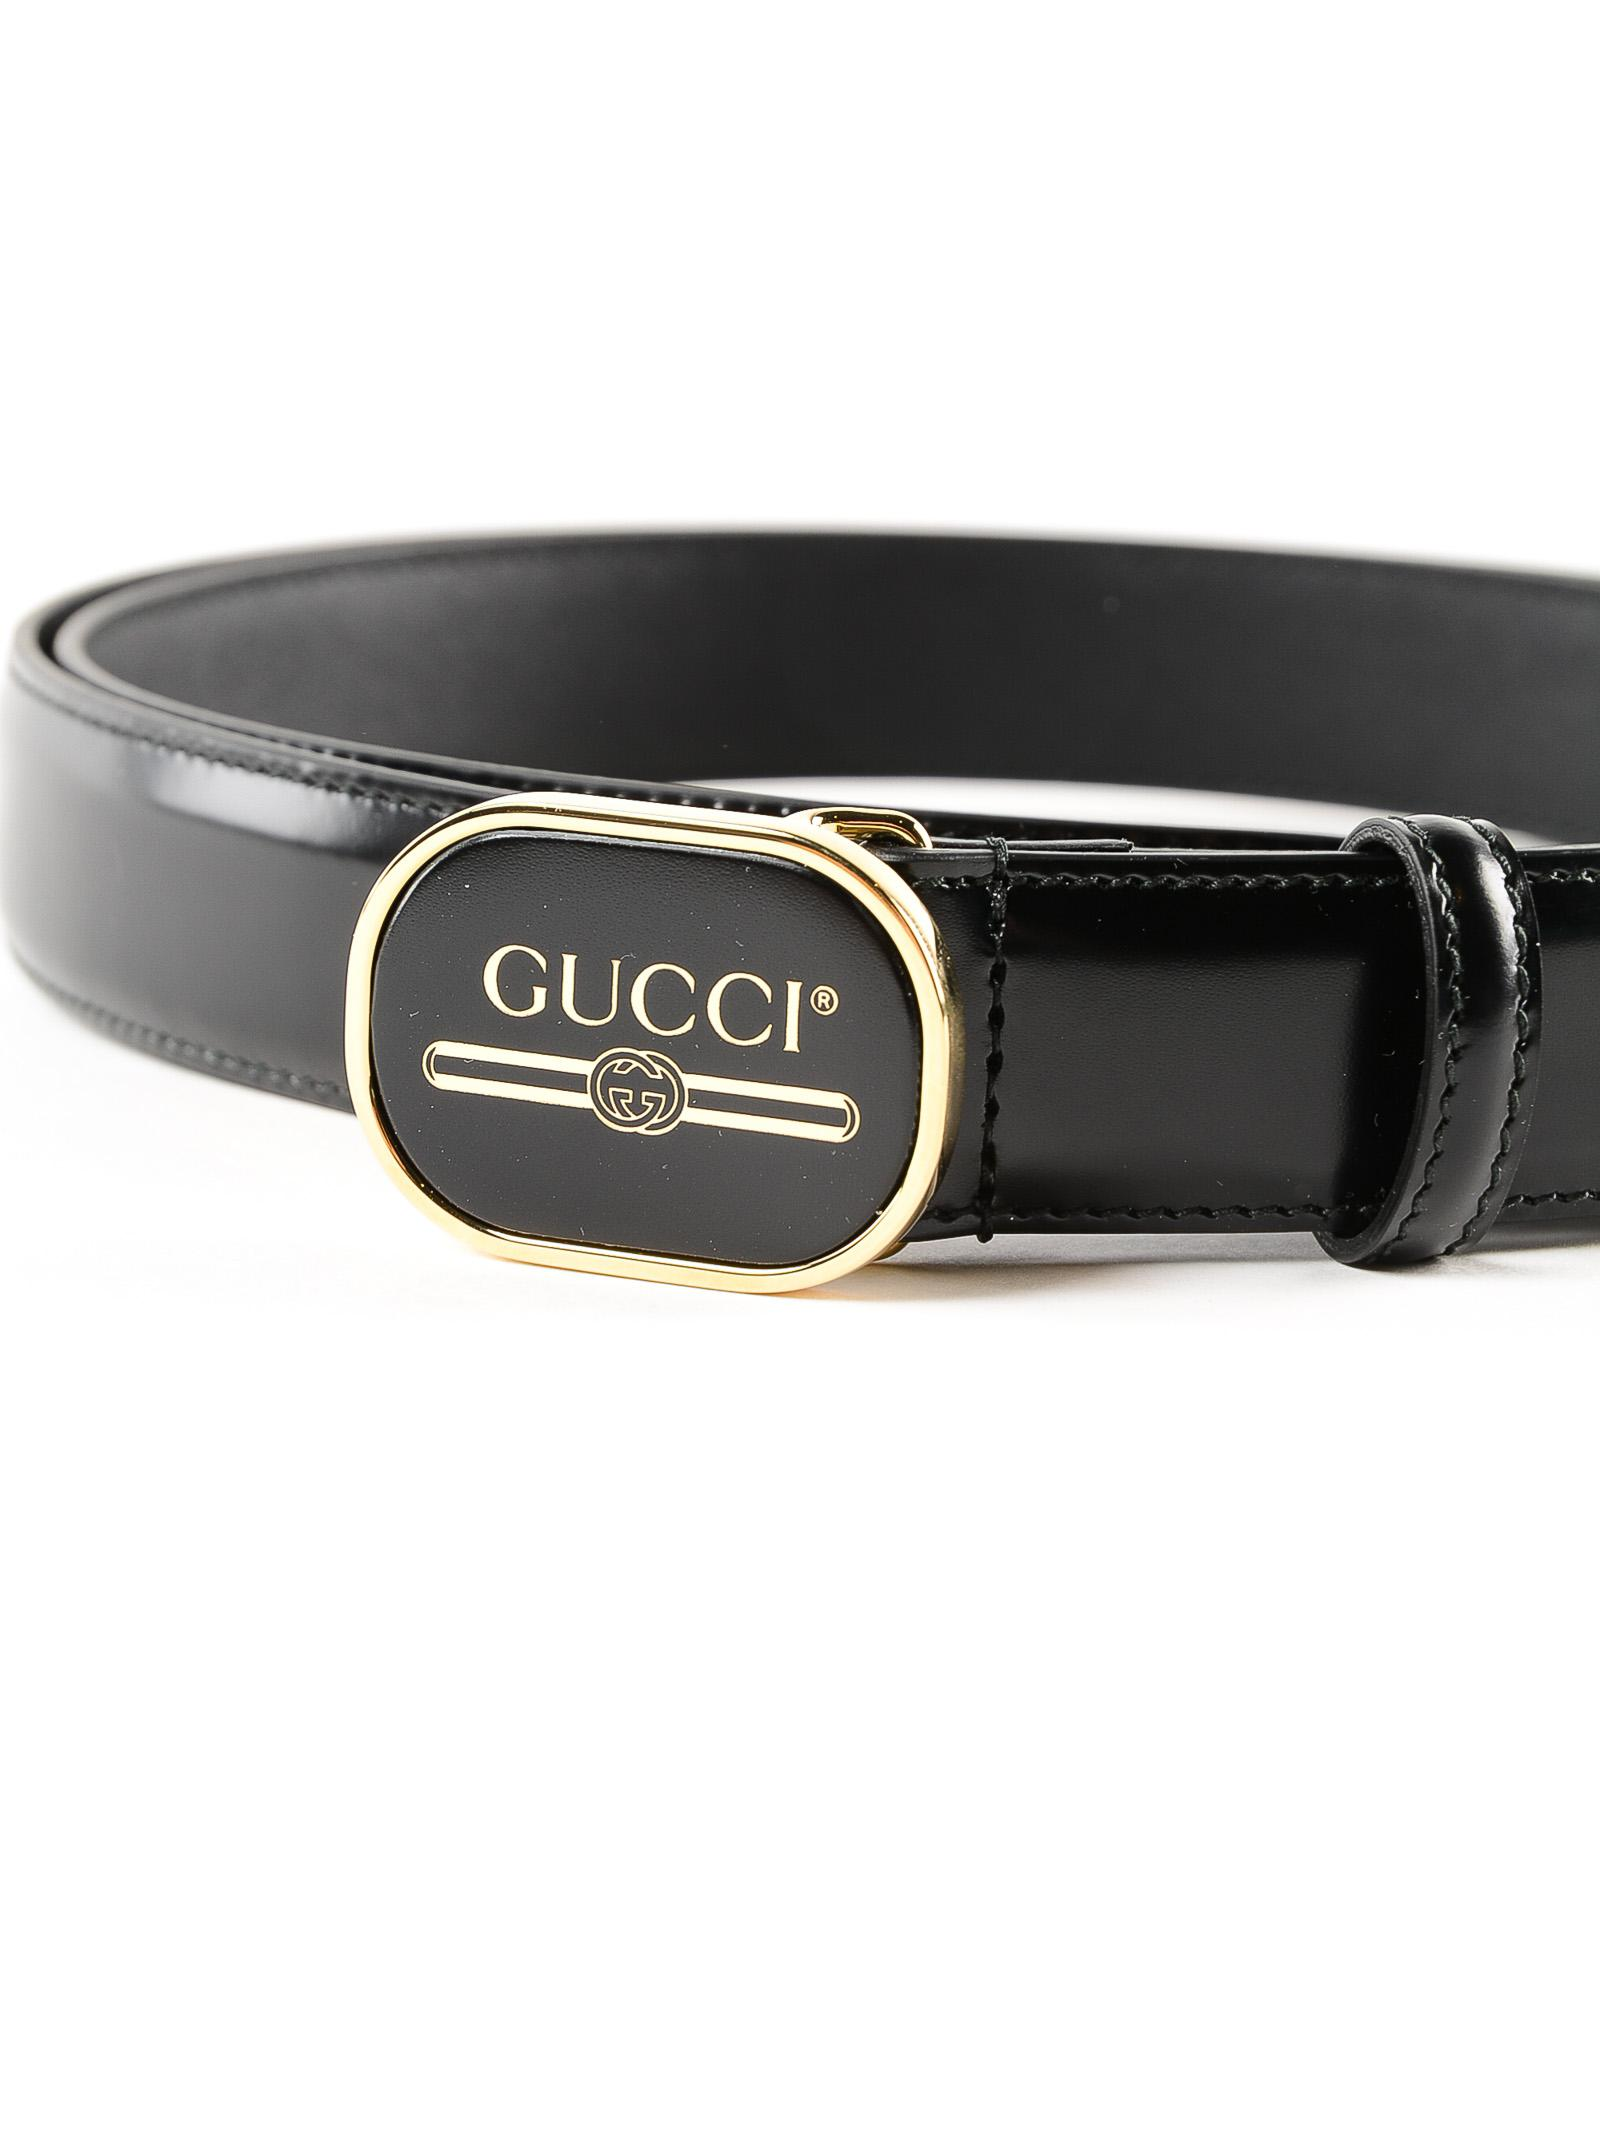 13b51ce9c35 Lyst - Gucci Print Calf Belt in Black for Men